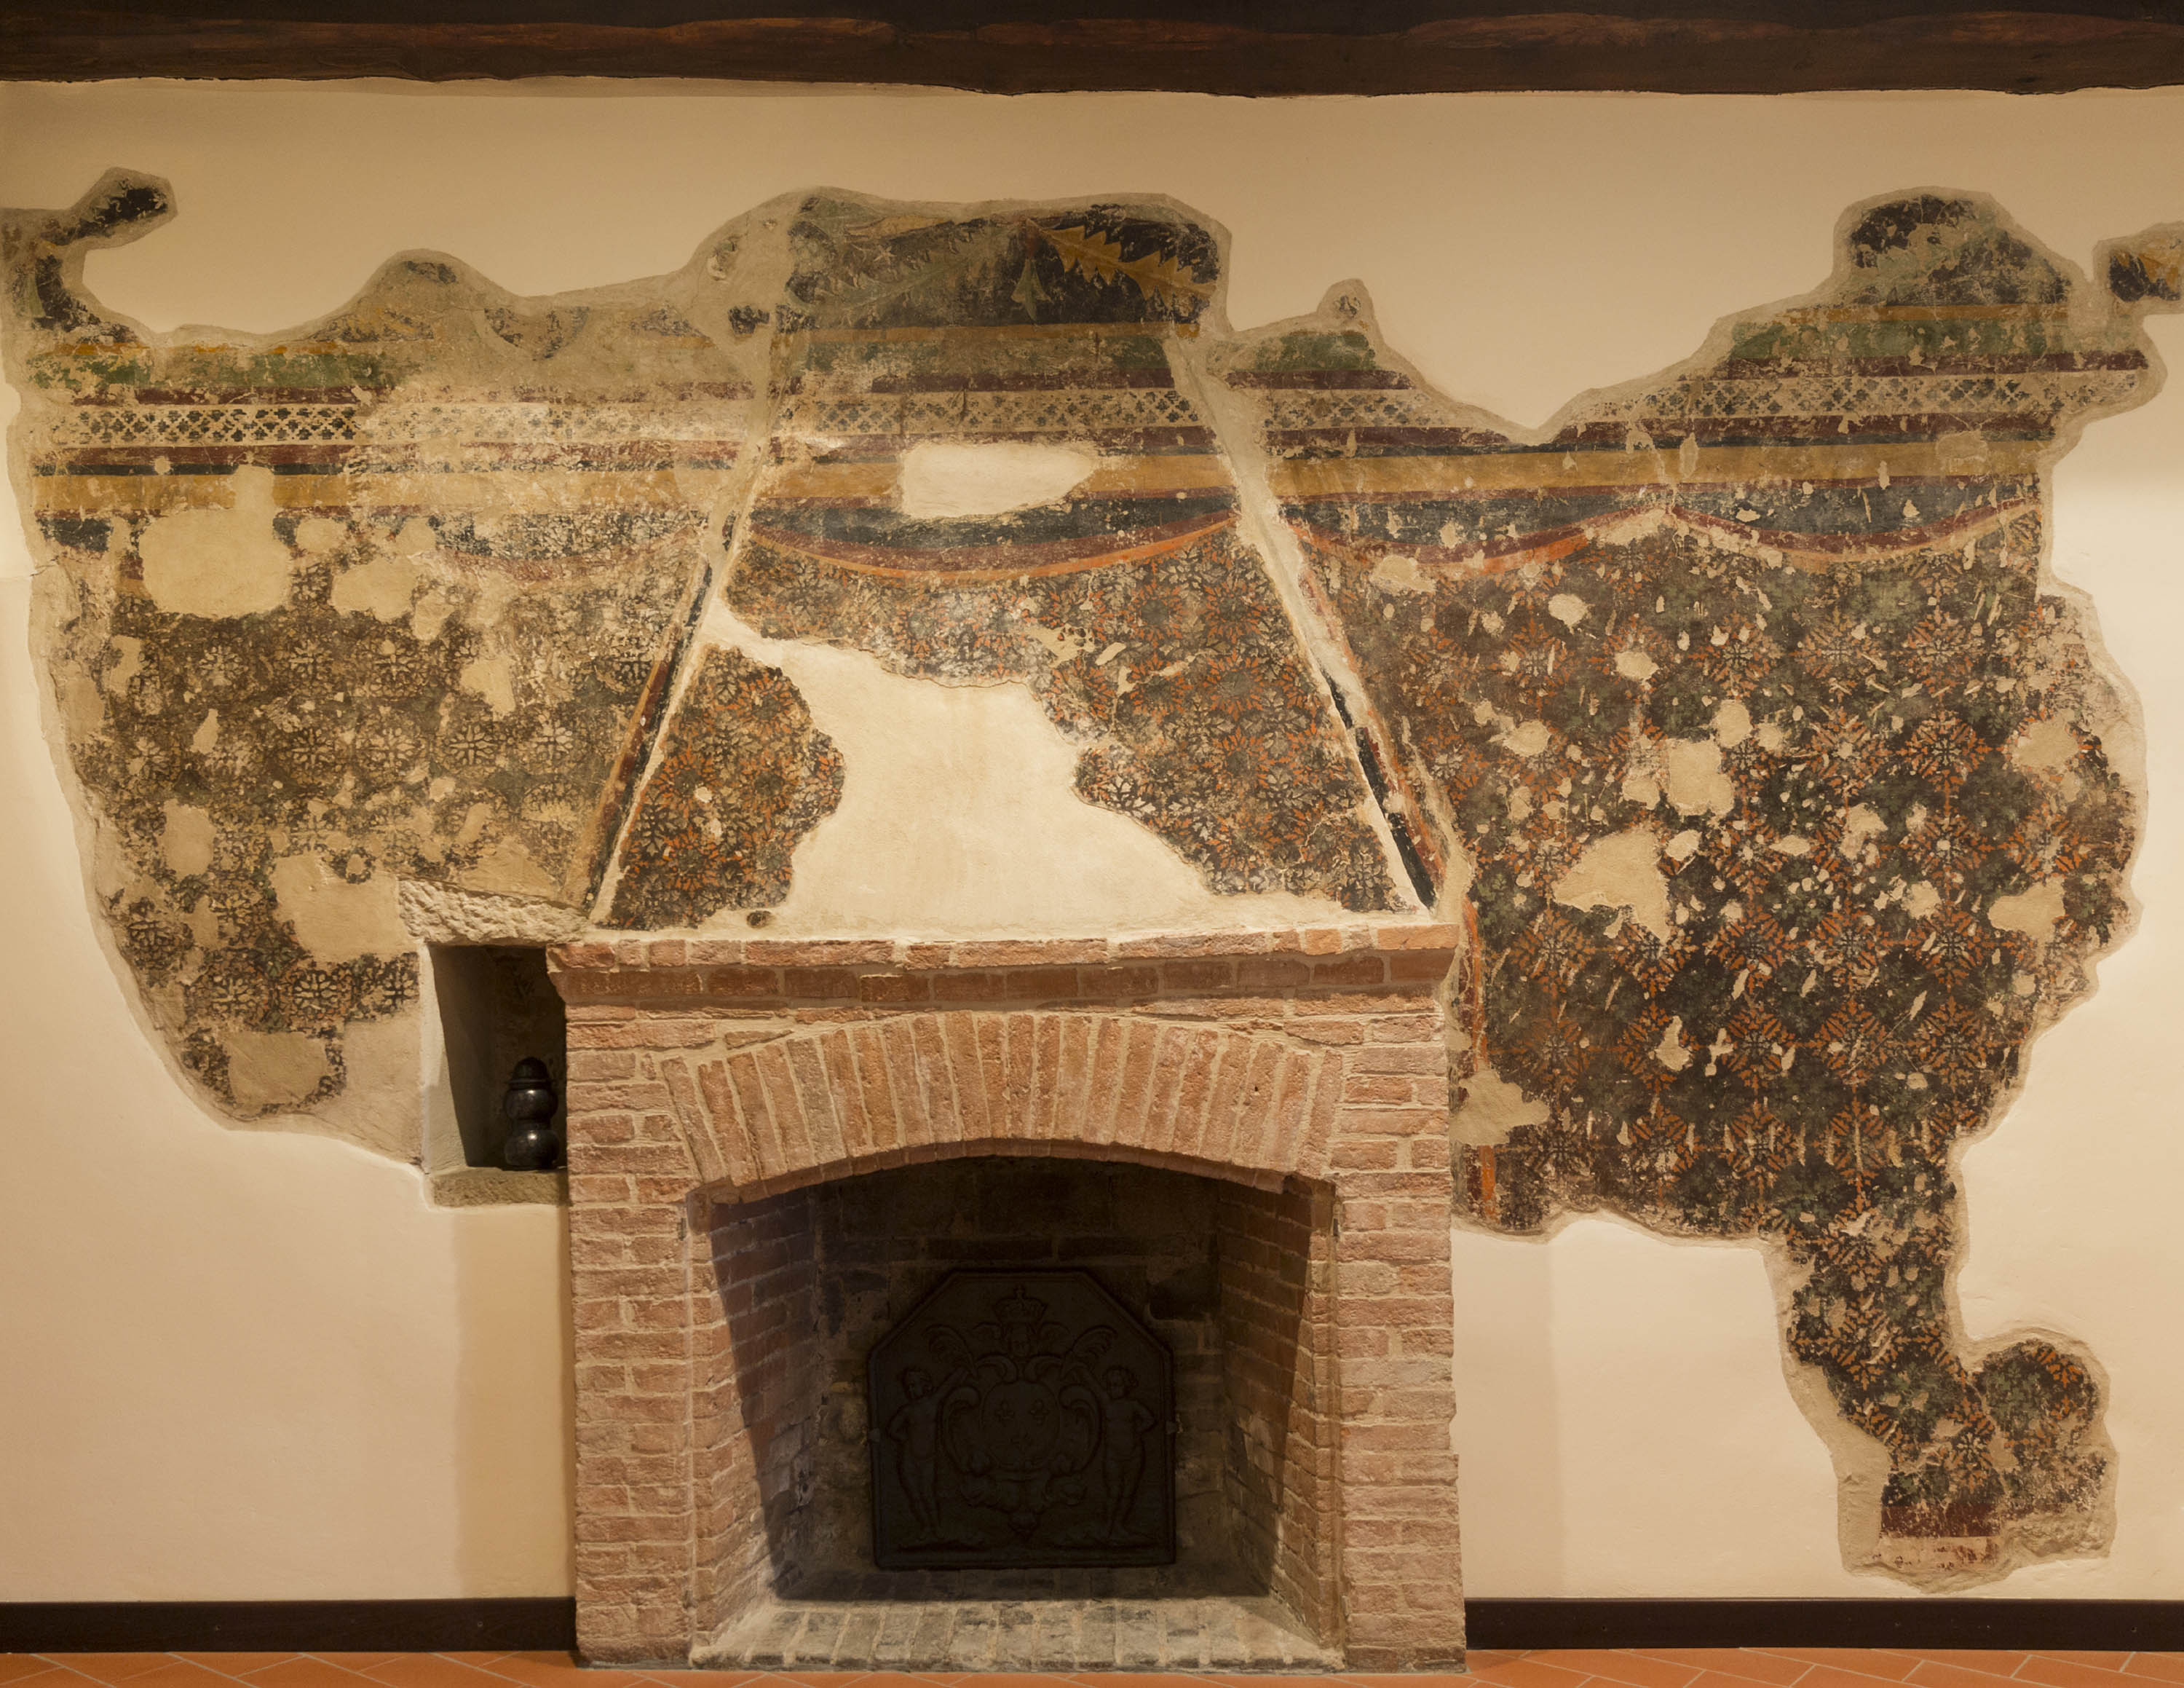 The Castle and its frescos